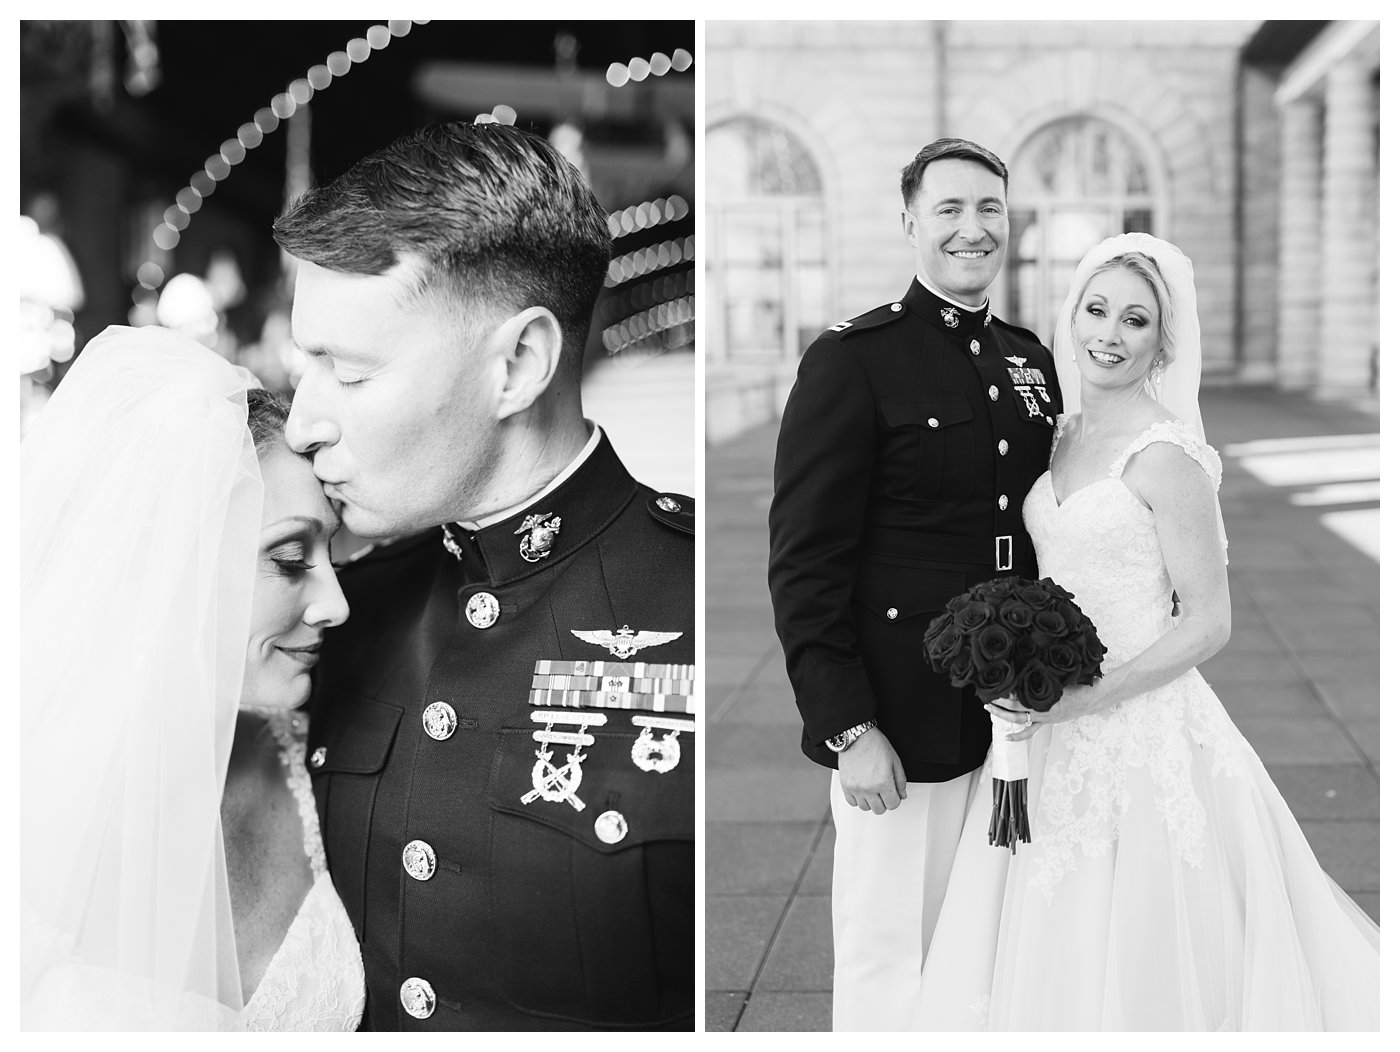 Naval Academy Wedding by Amanda and Grady Photography